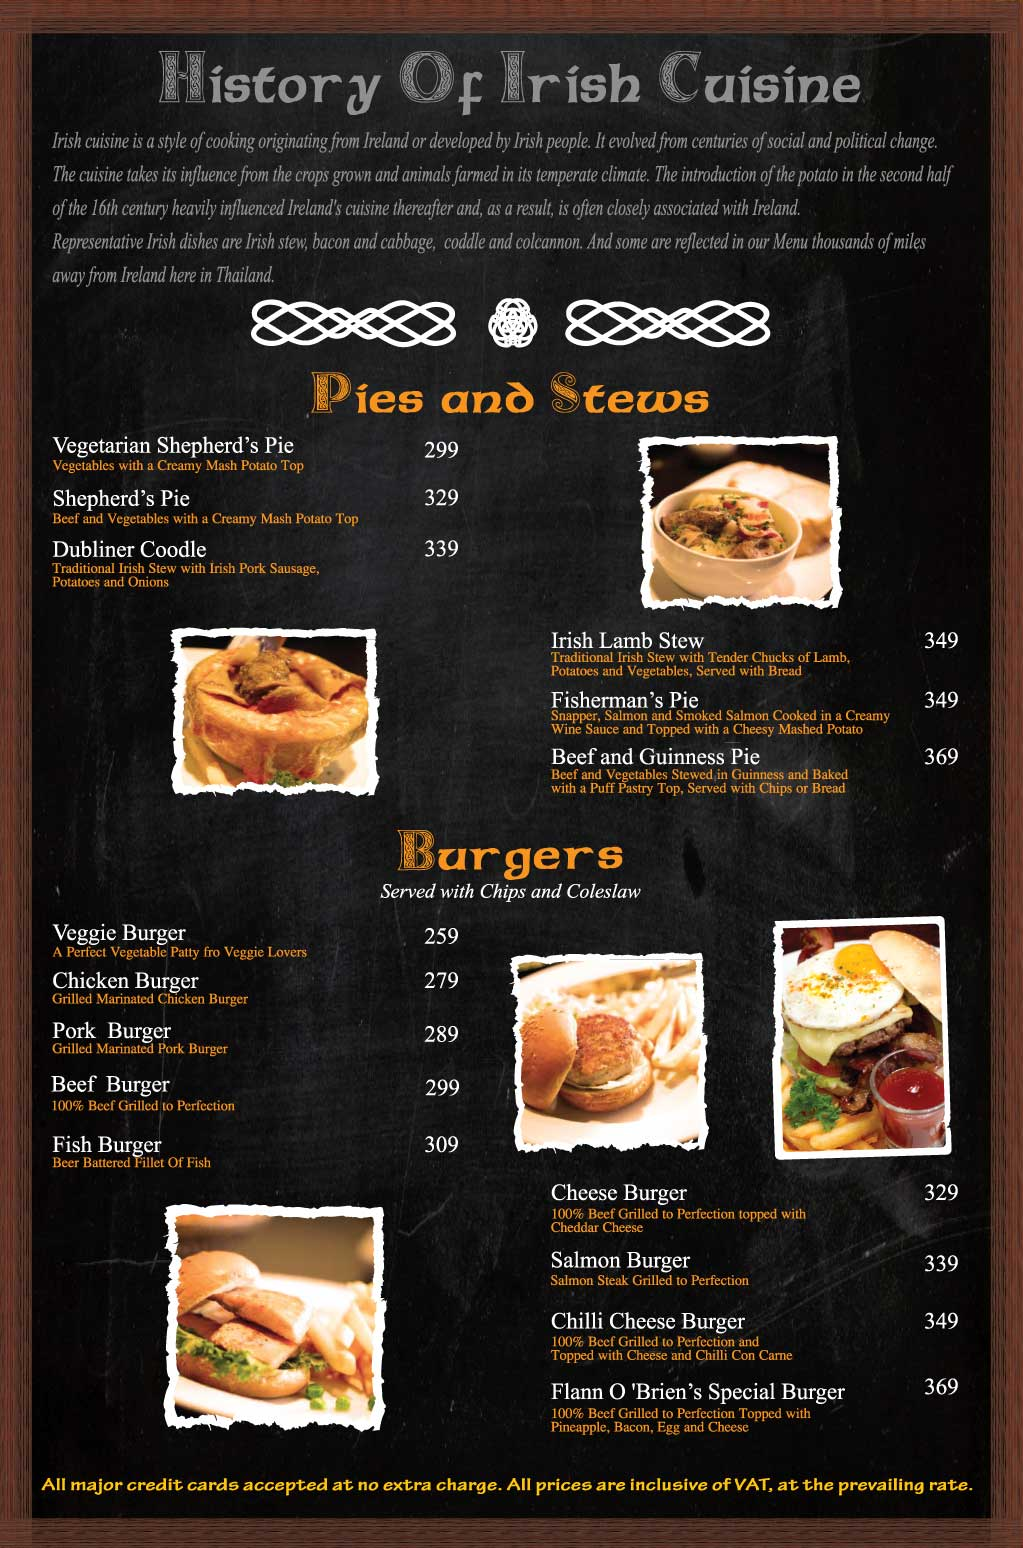 Flann Impact Food Menu Pies Stews Burgers